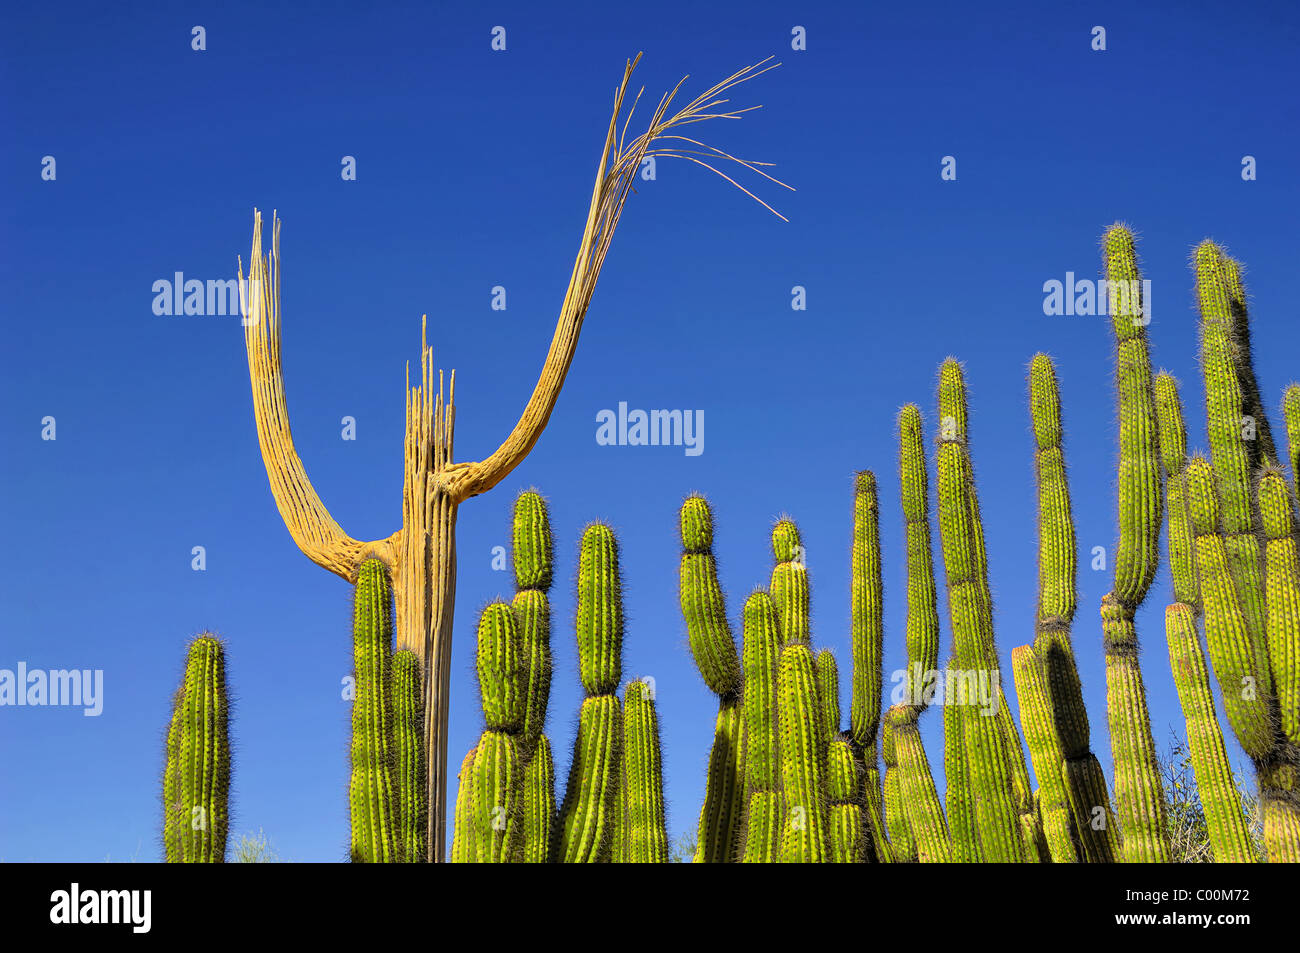 The skeleton of a Saguaro Cactus together with a group of Organ Pipe Cactii. Choirmaster and Choir ? Desert Museum - Stock Image